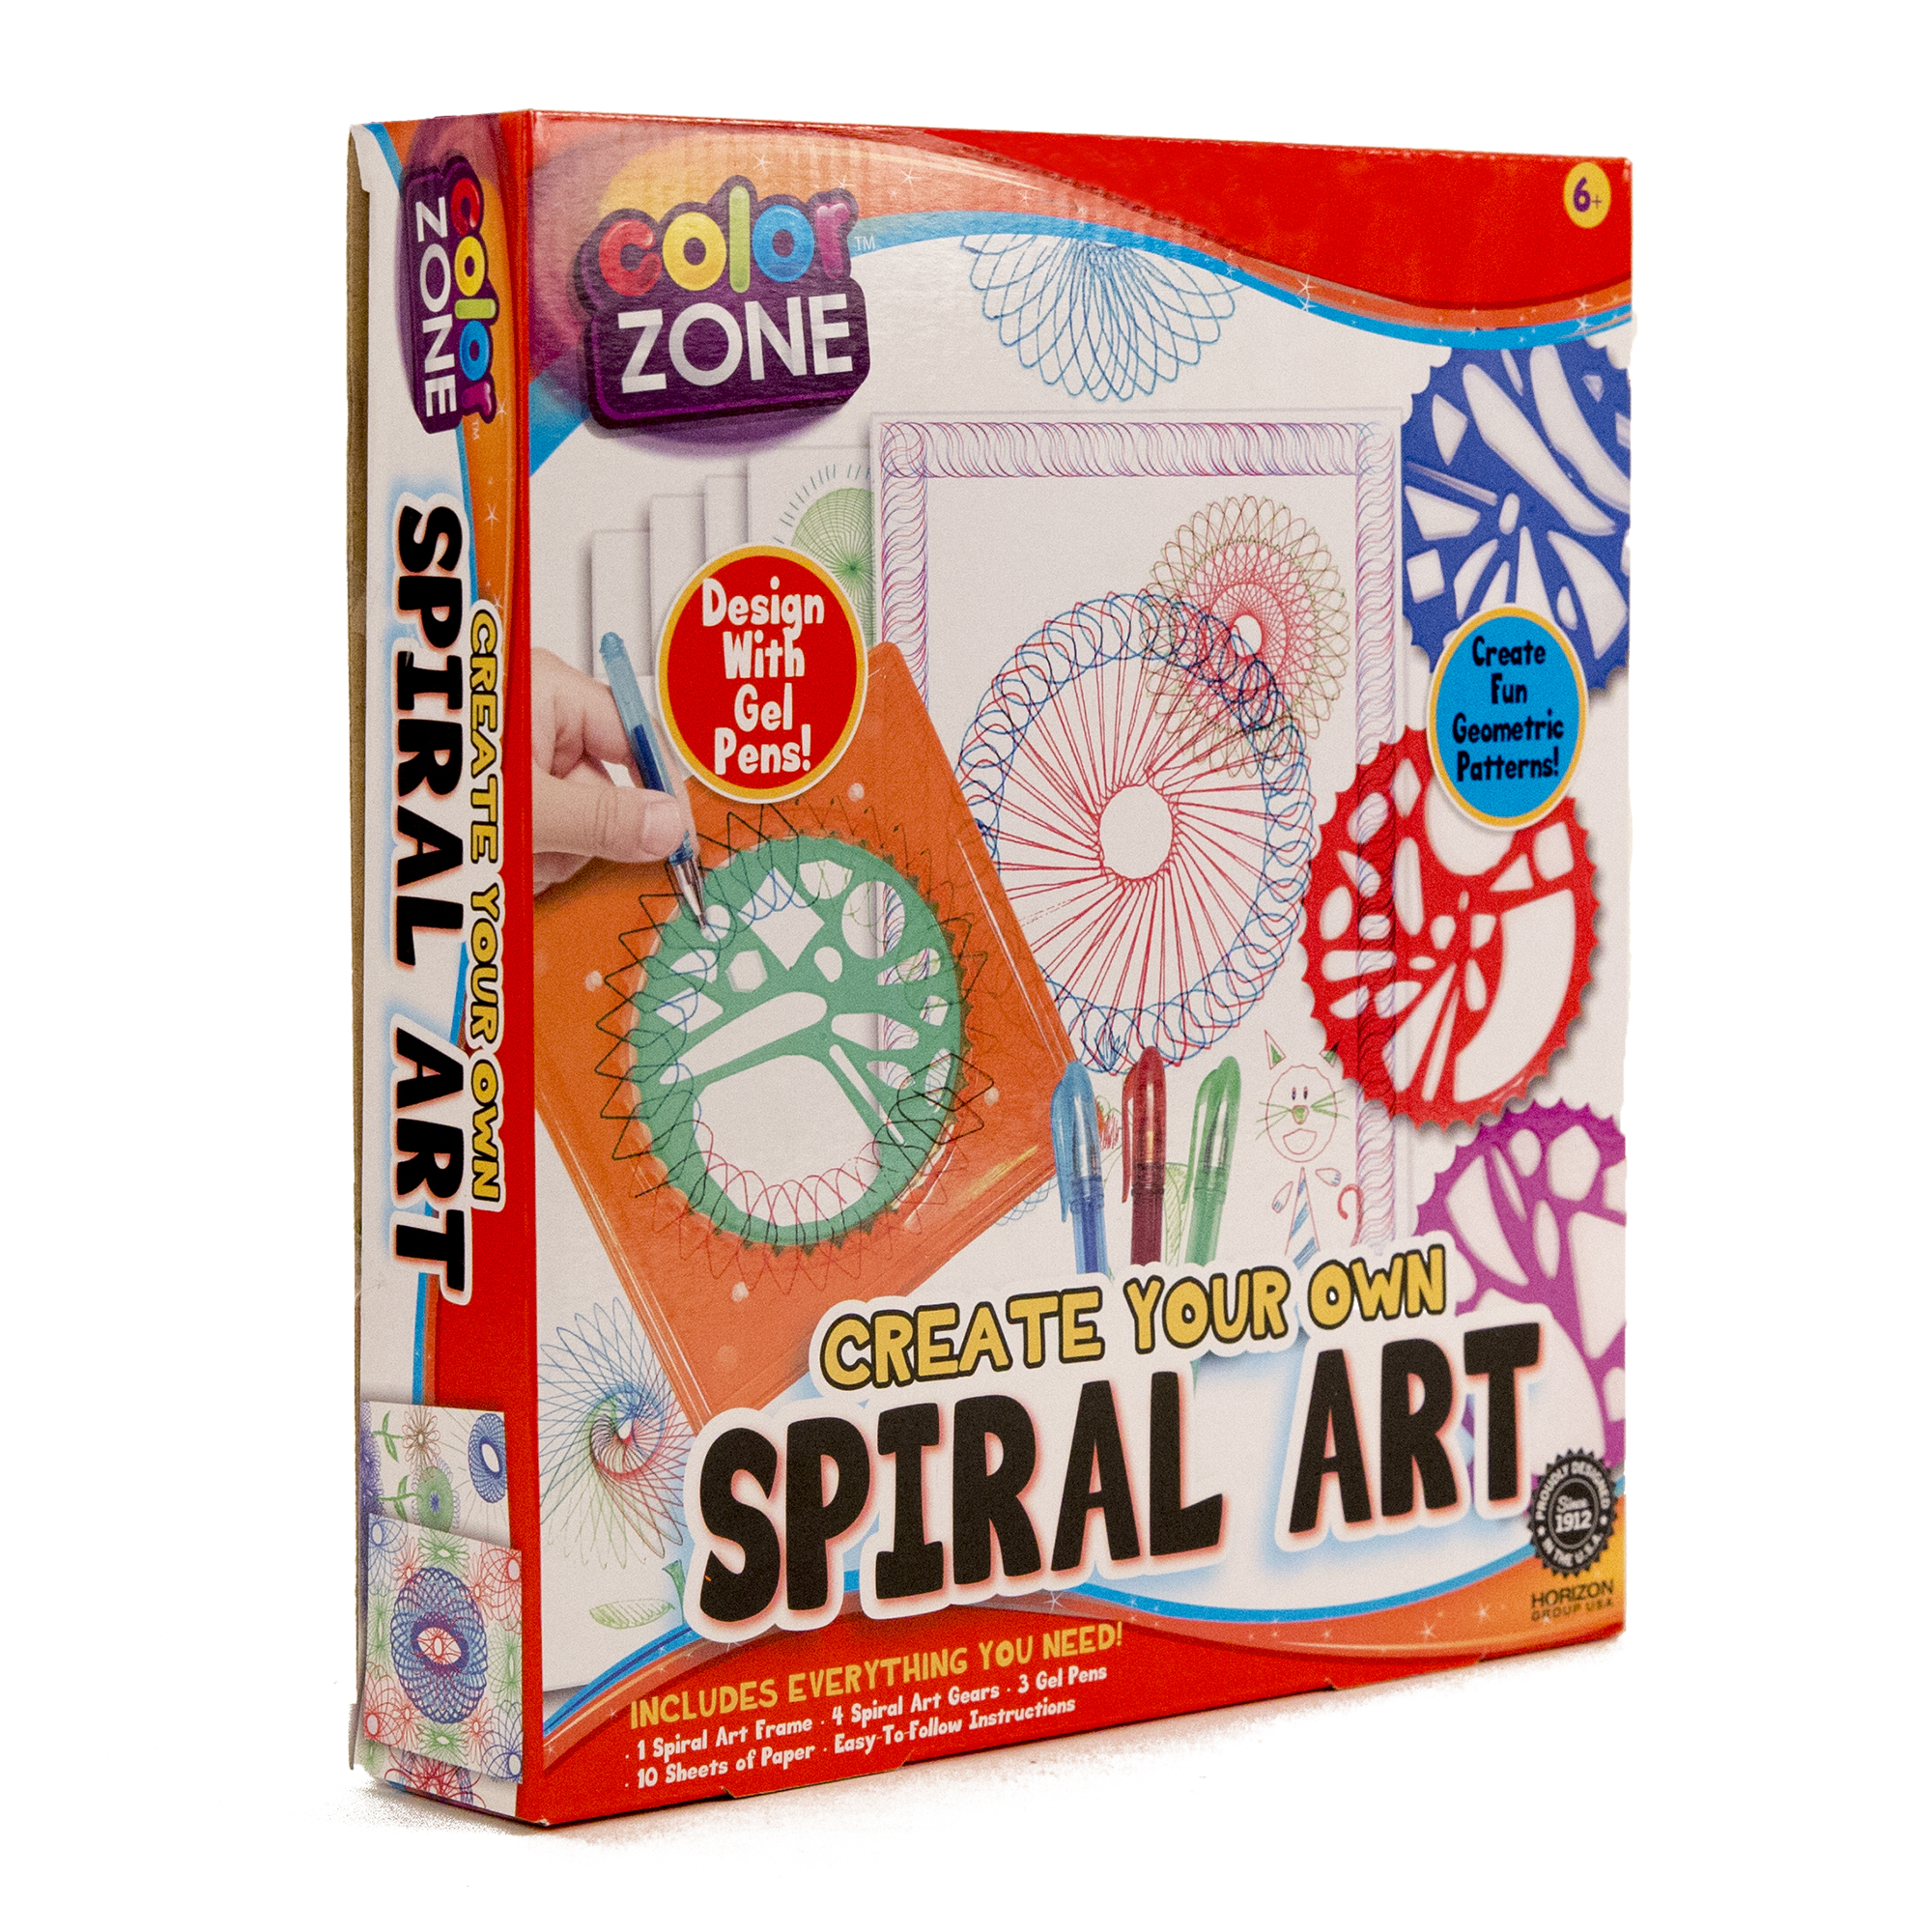 color zone spiral art kit package